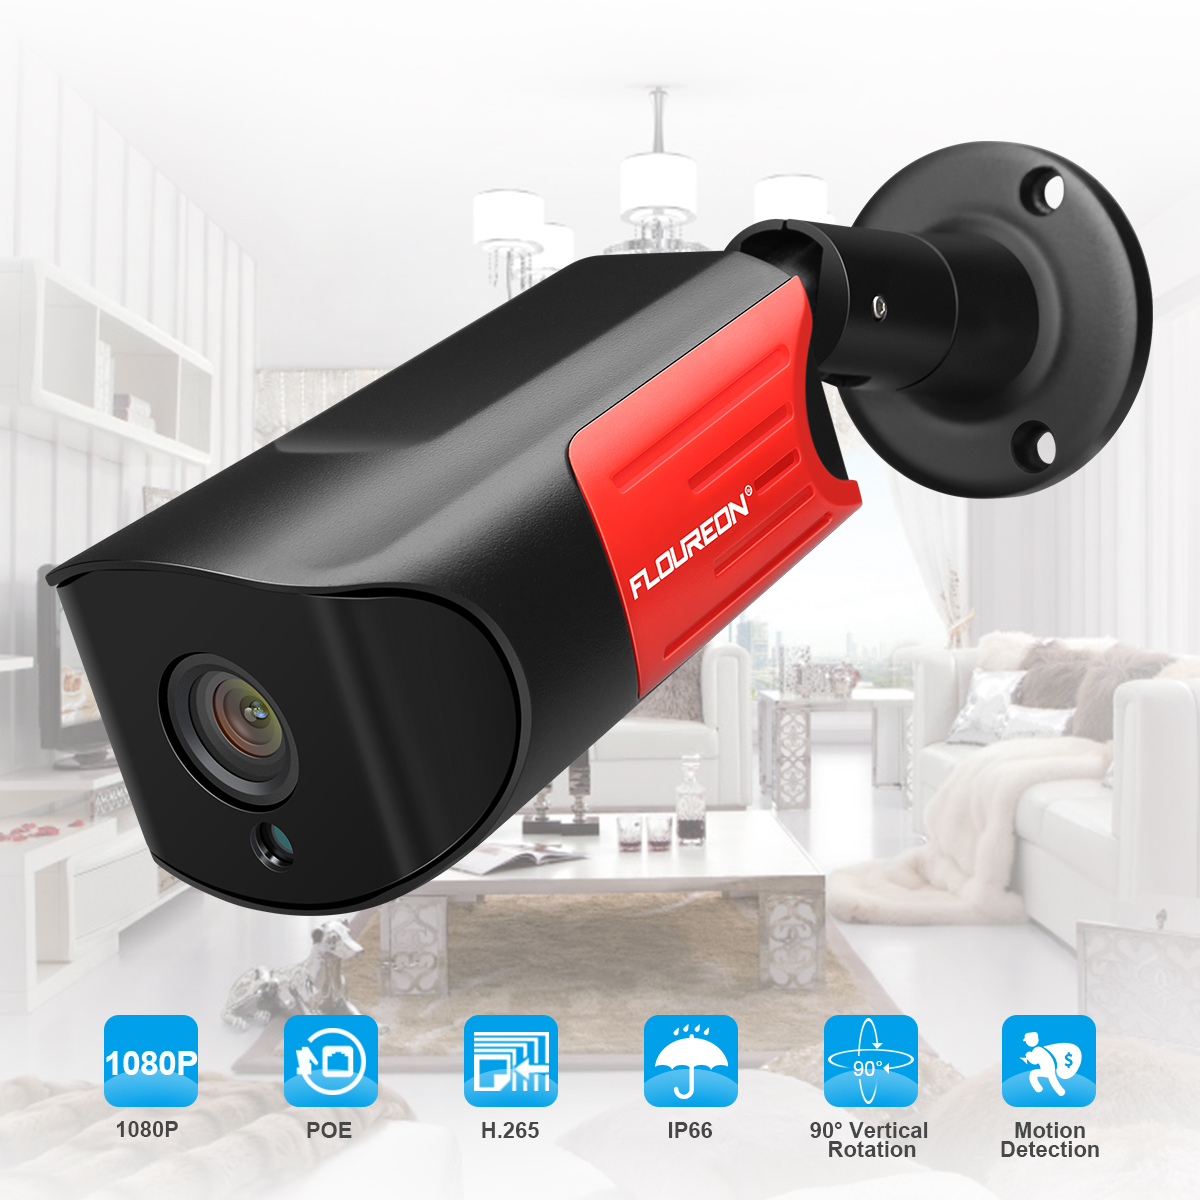 FLOUREON WiFi Video Monitoring Security Wireless IP Camera, 1080P 2.0MP POE IP Camera with 4mm Lens, 50ft Night Vision, Motion Detection, Remote View